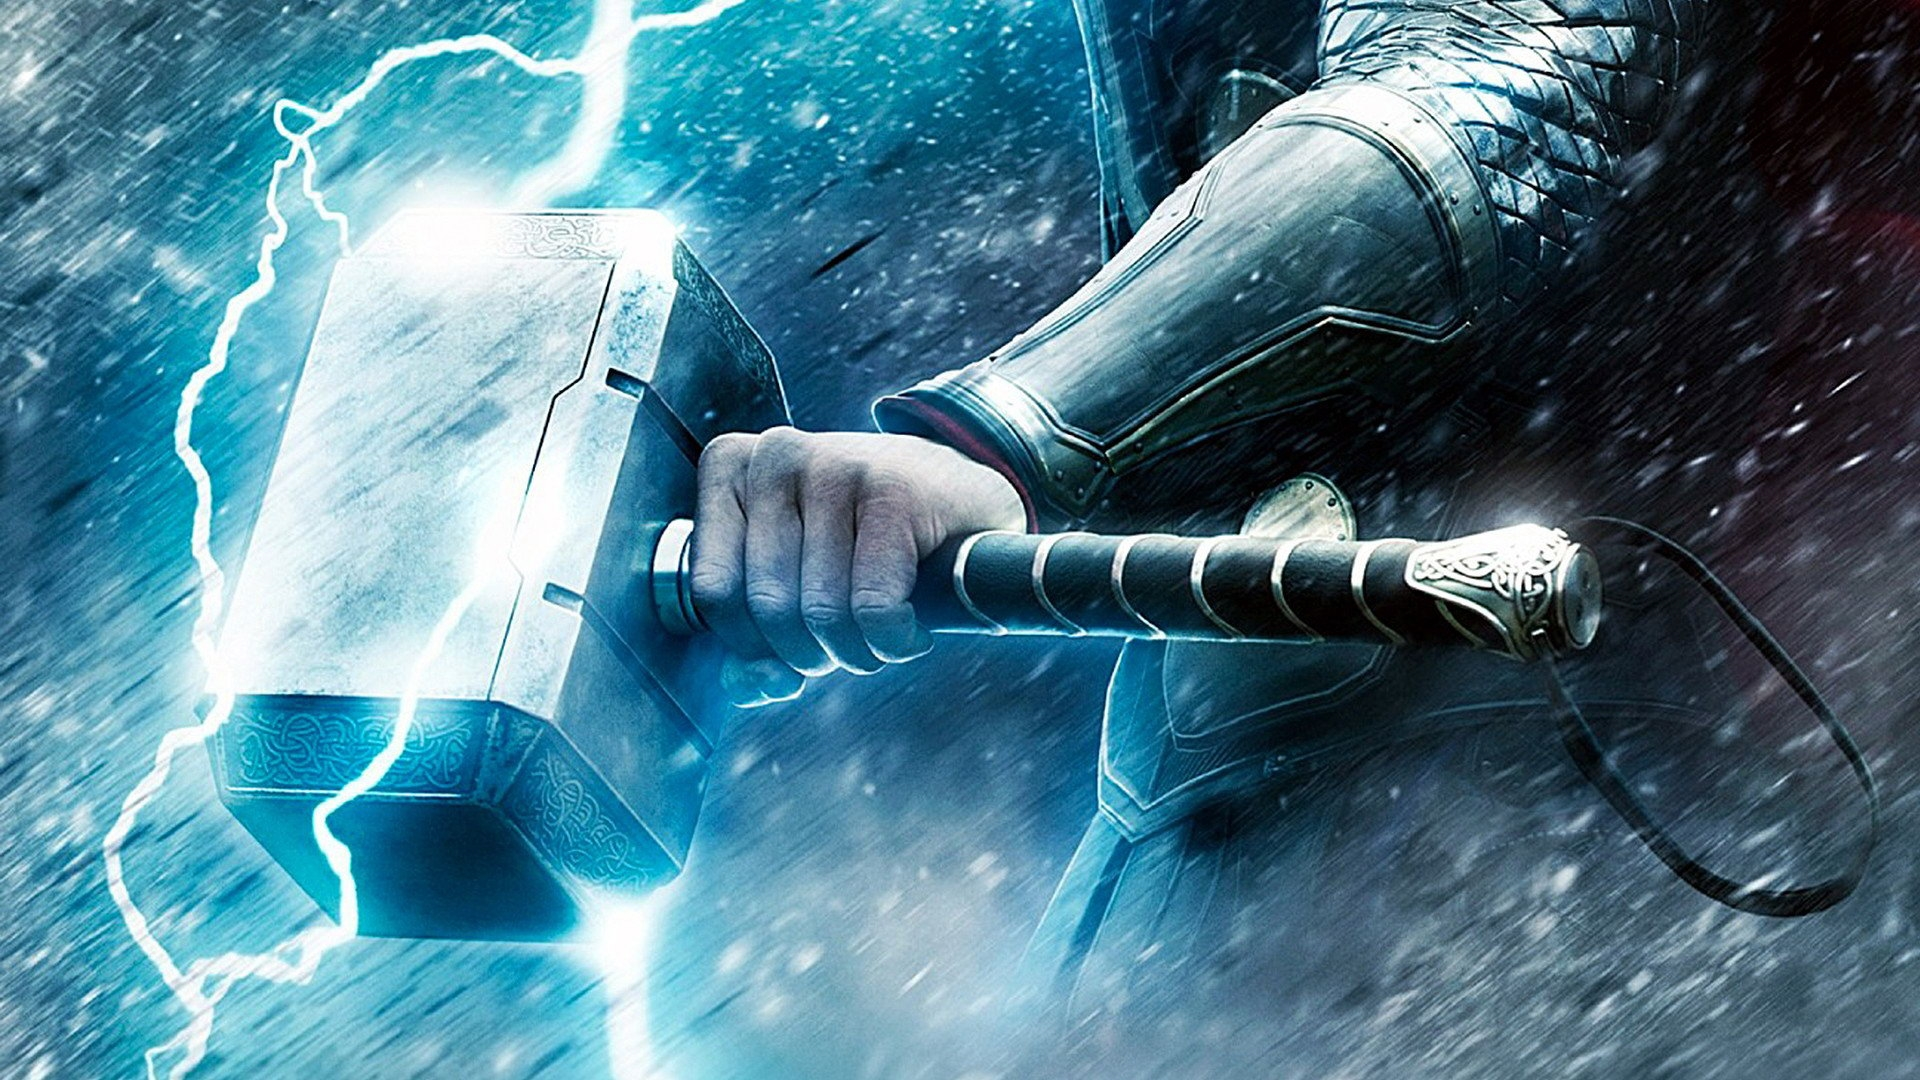 free thor wallpaper hd deskto